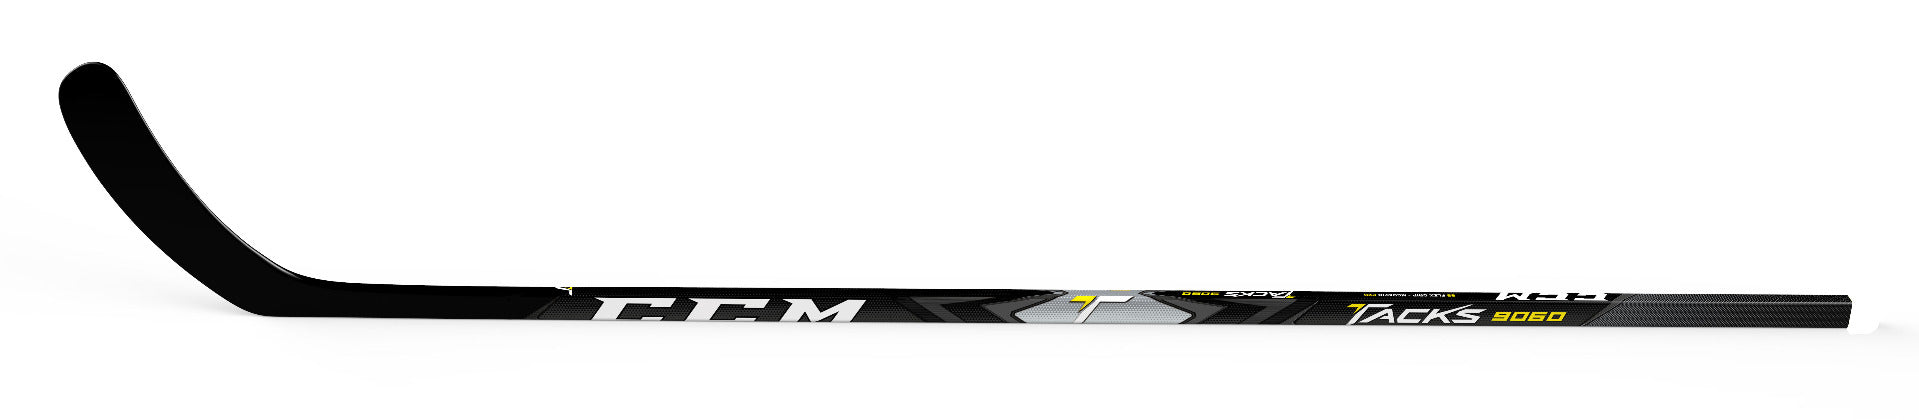 CCM Tacks 9060 Senior Ice Hockey Stick